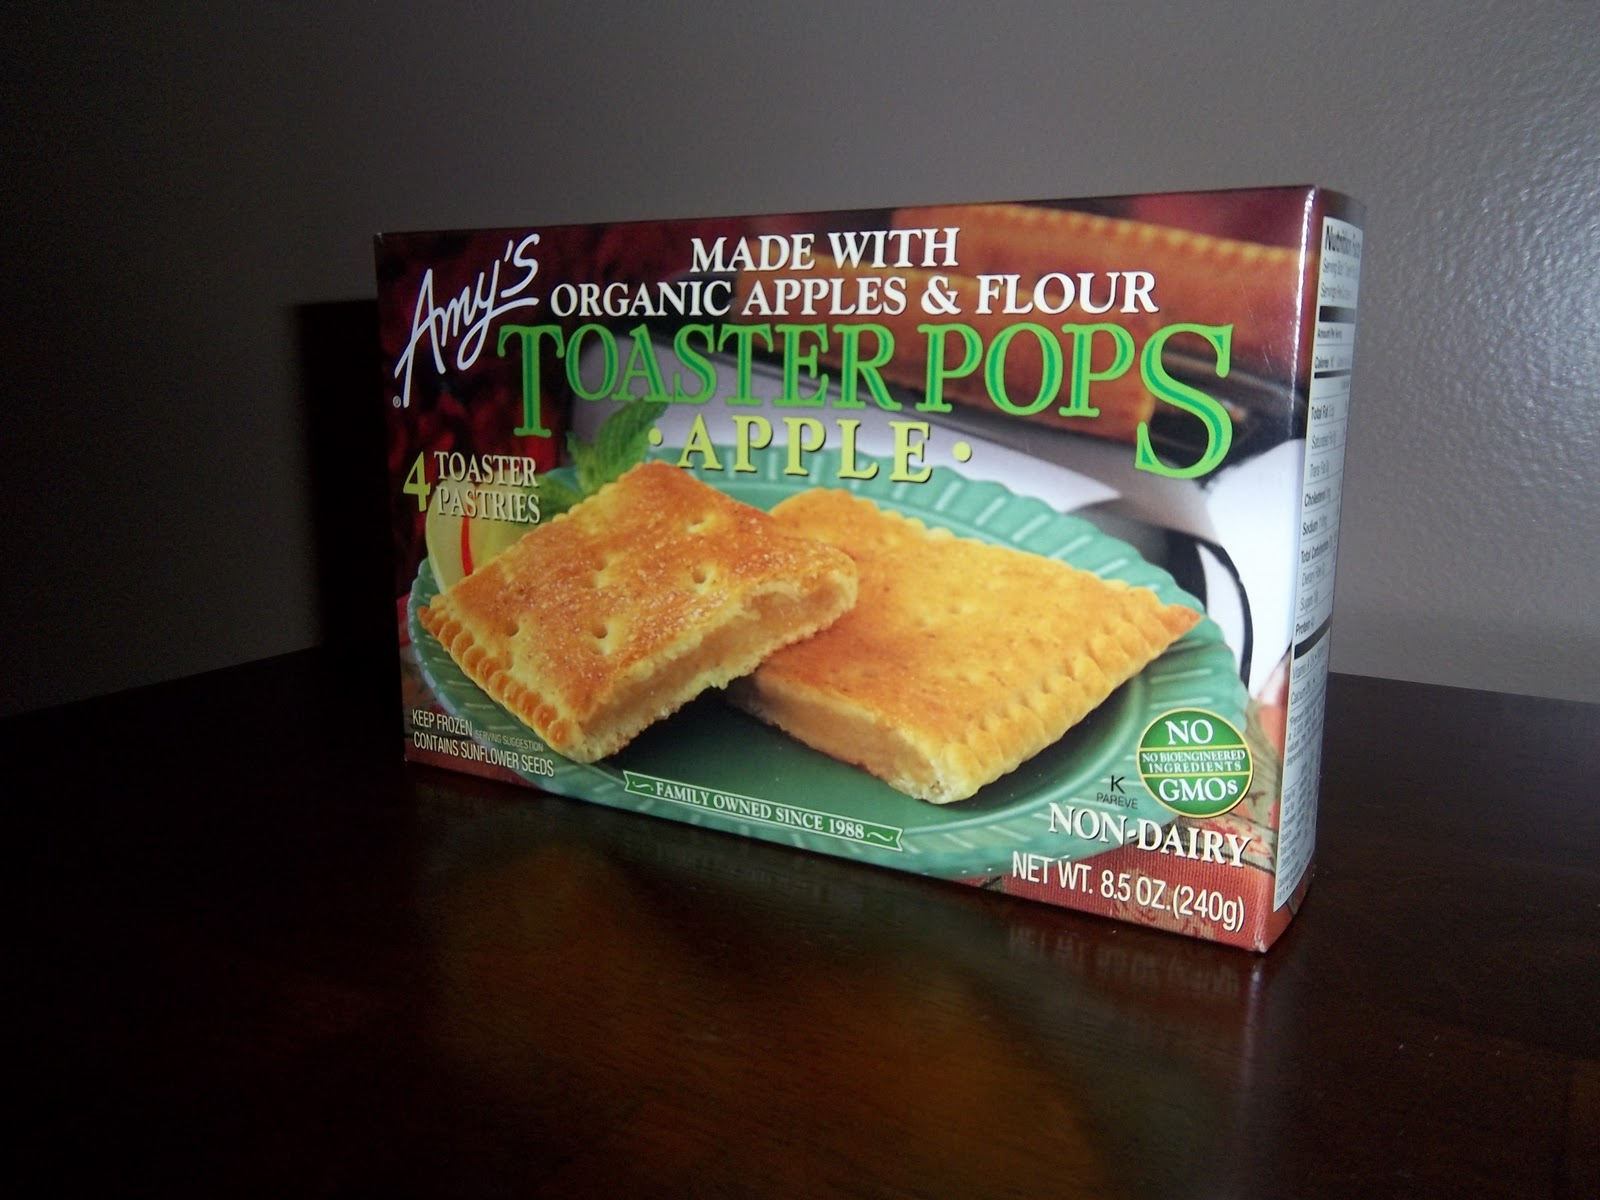 Apple Toaster Pops By Amy's (of Course!)